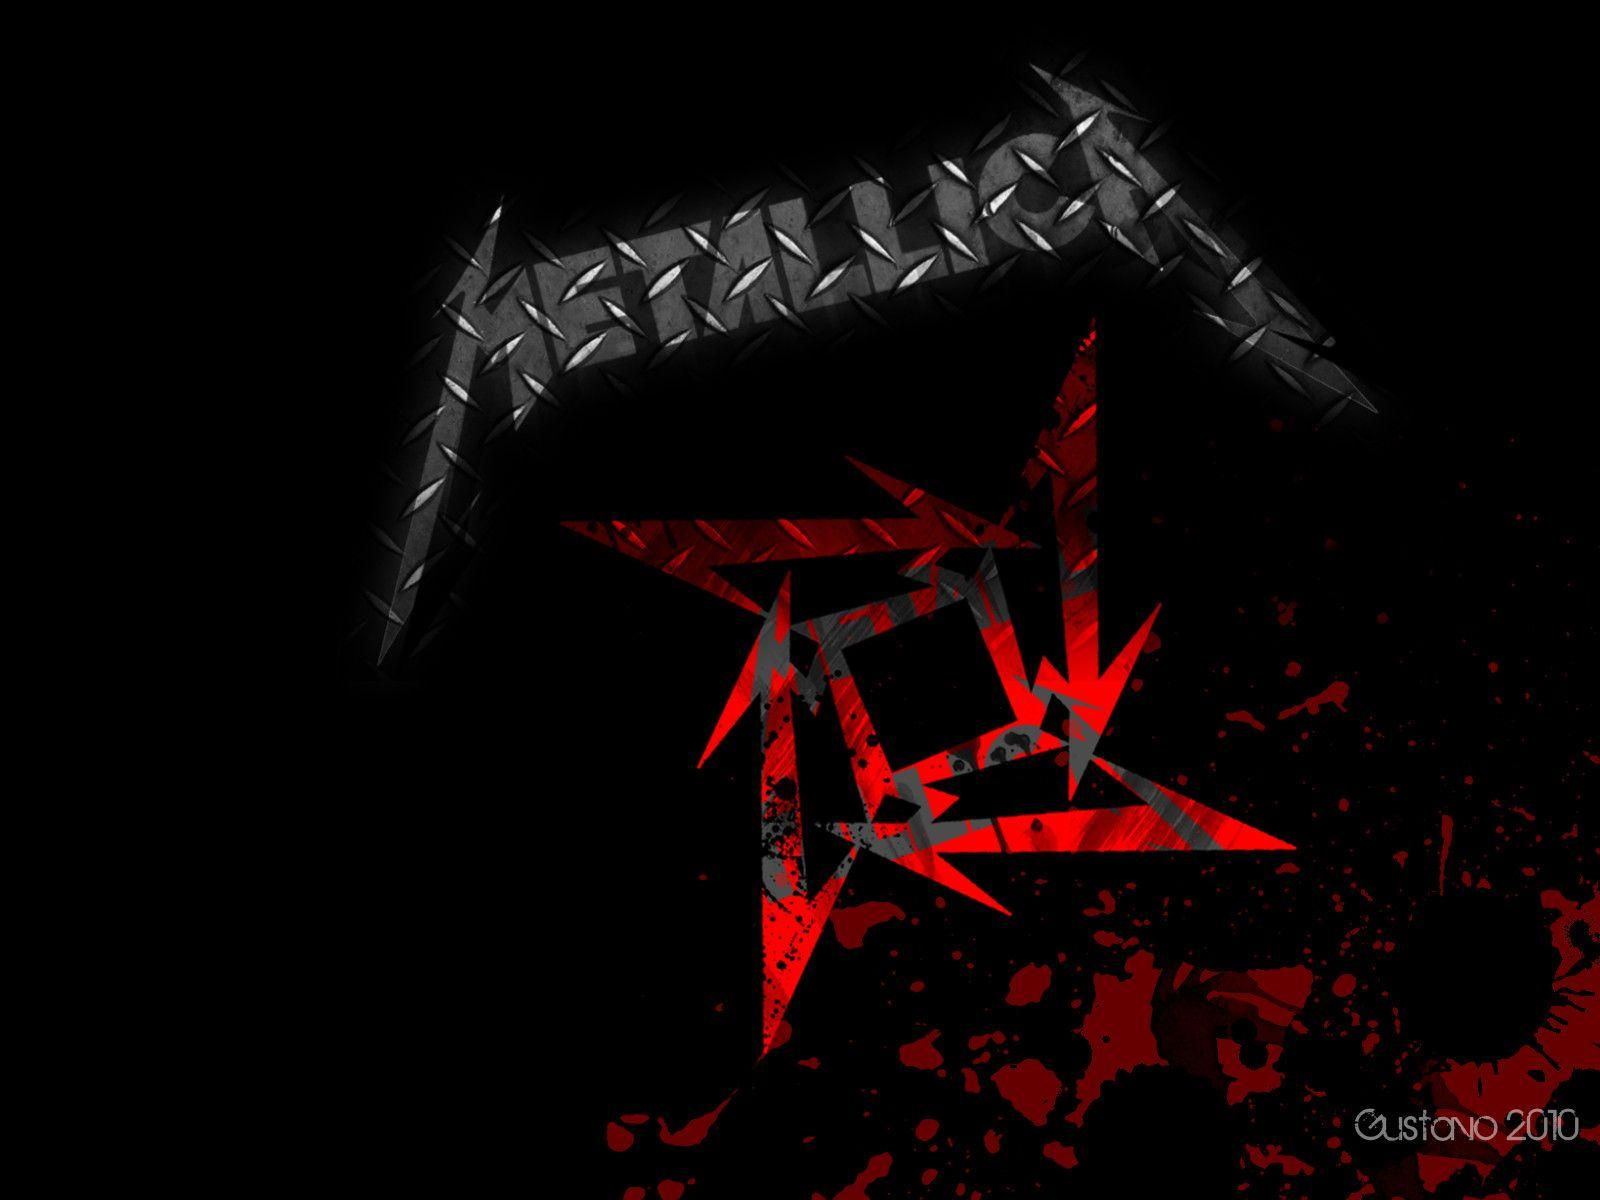 Awesome Metallica wallpapers